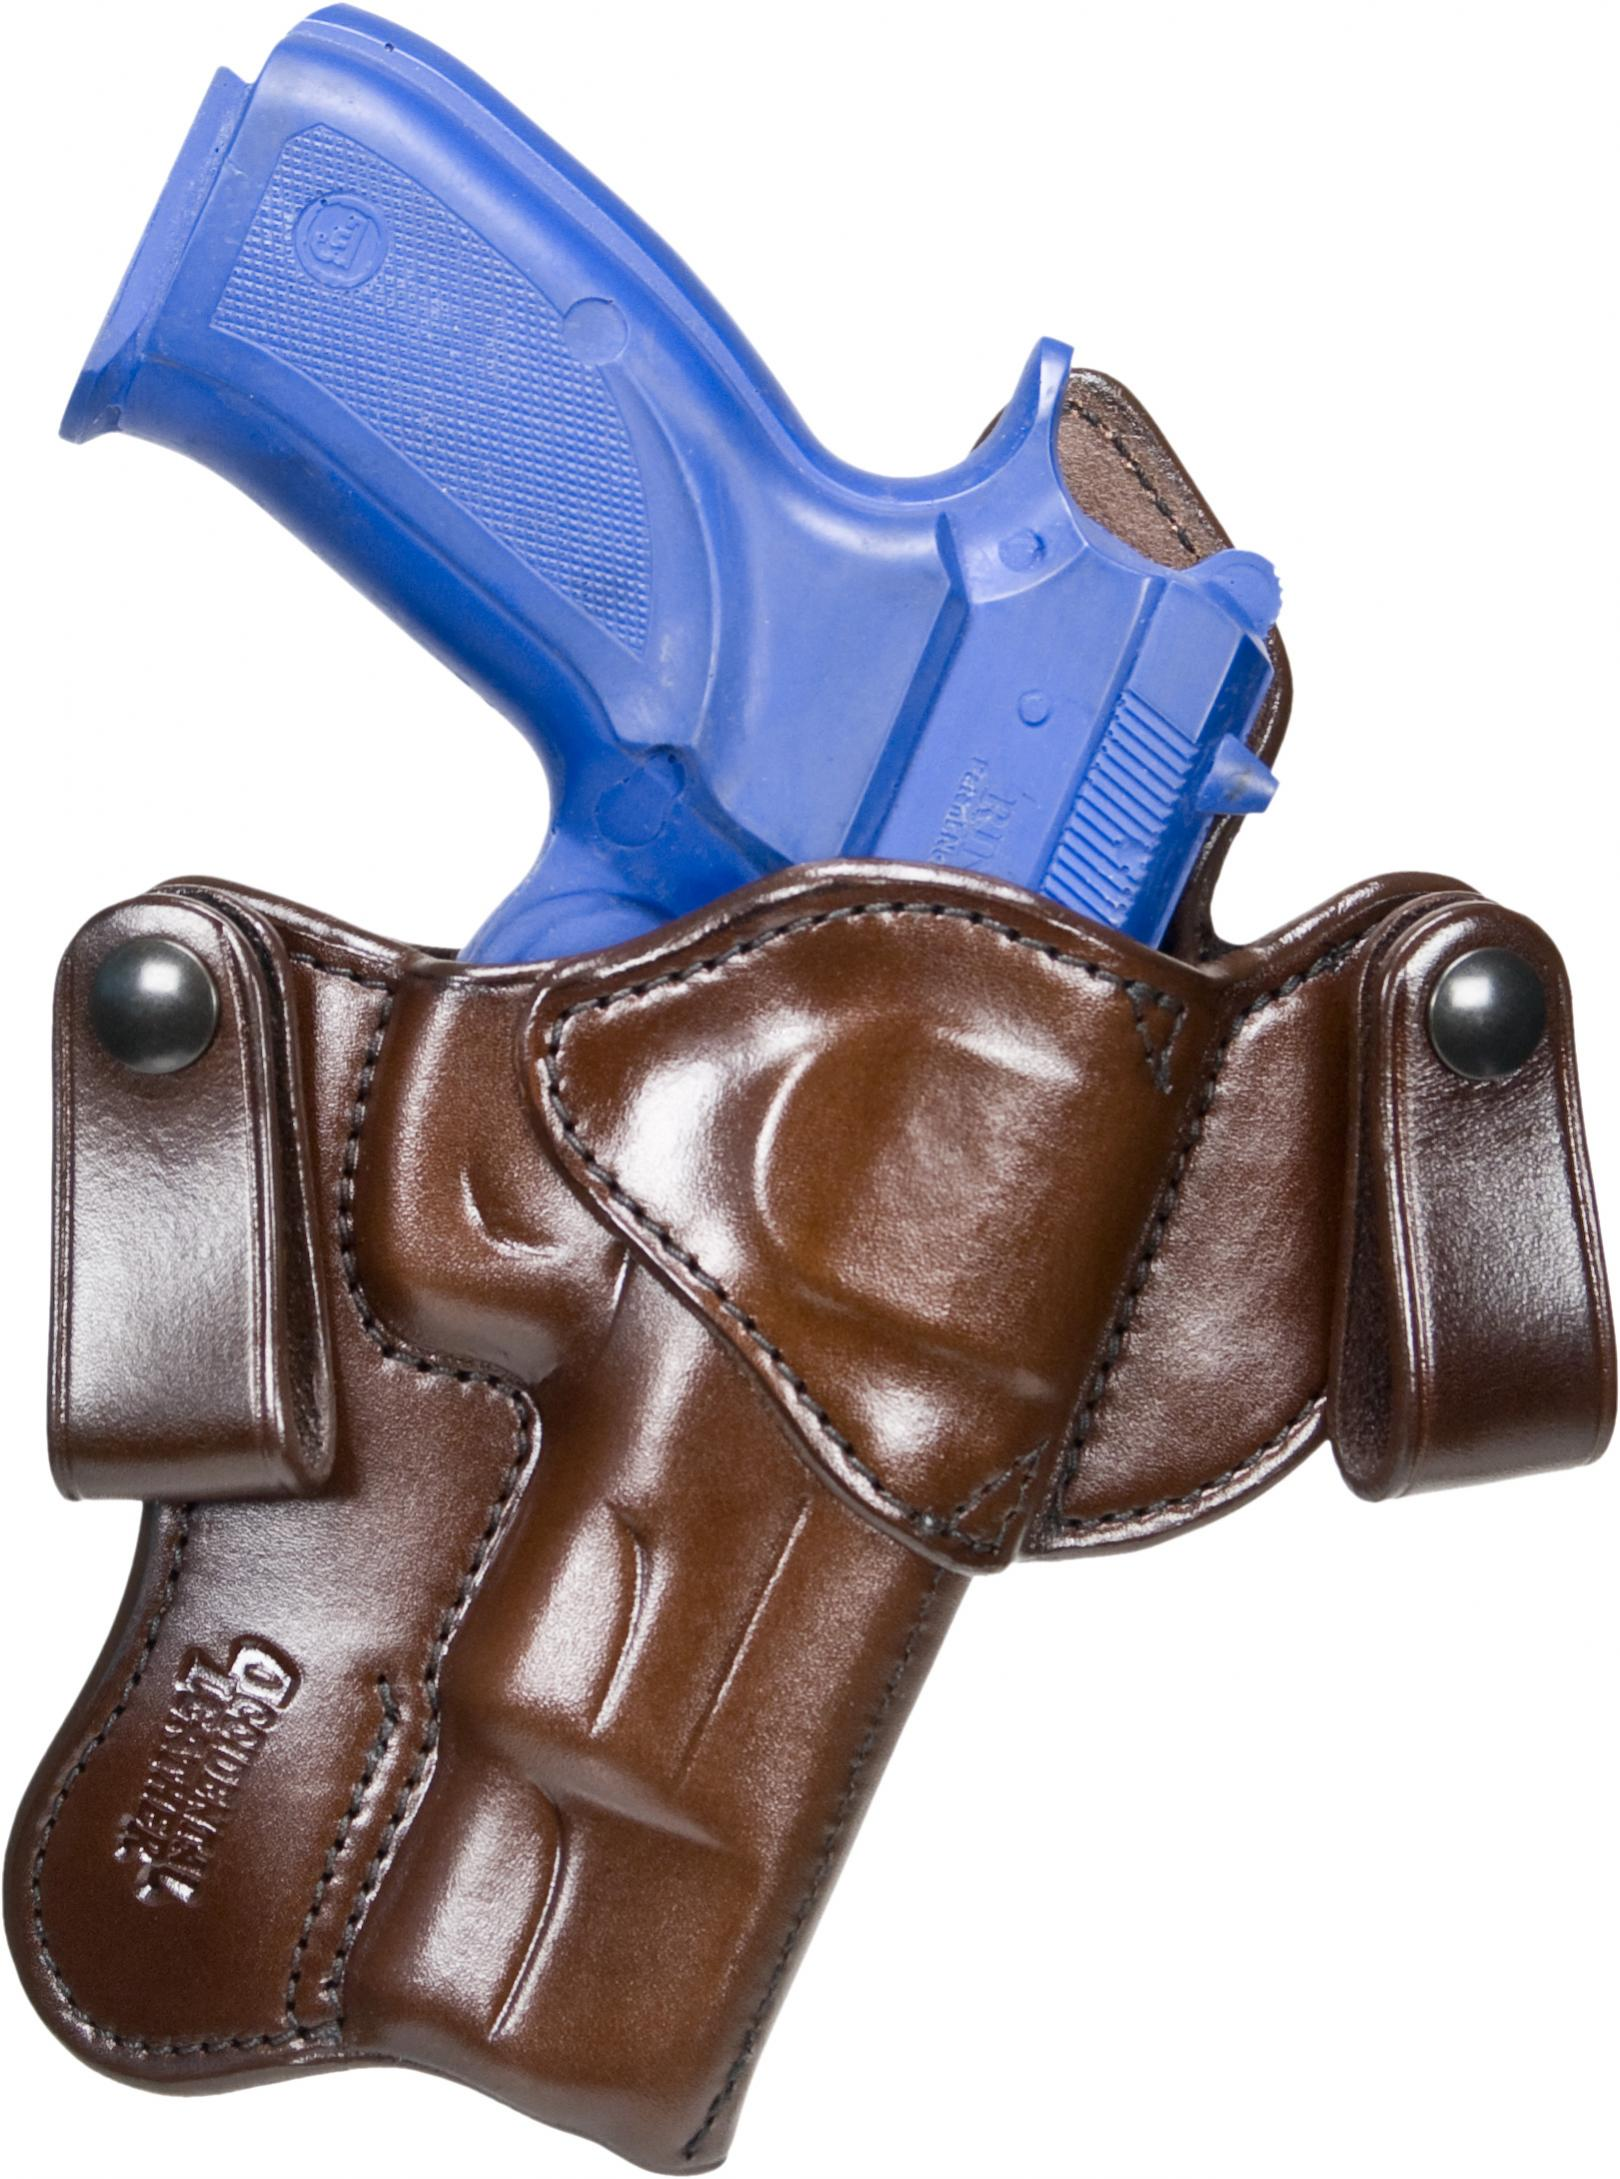 Stronghold Holsters update!-13382171.jpg